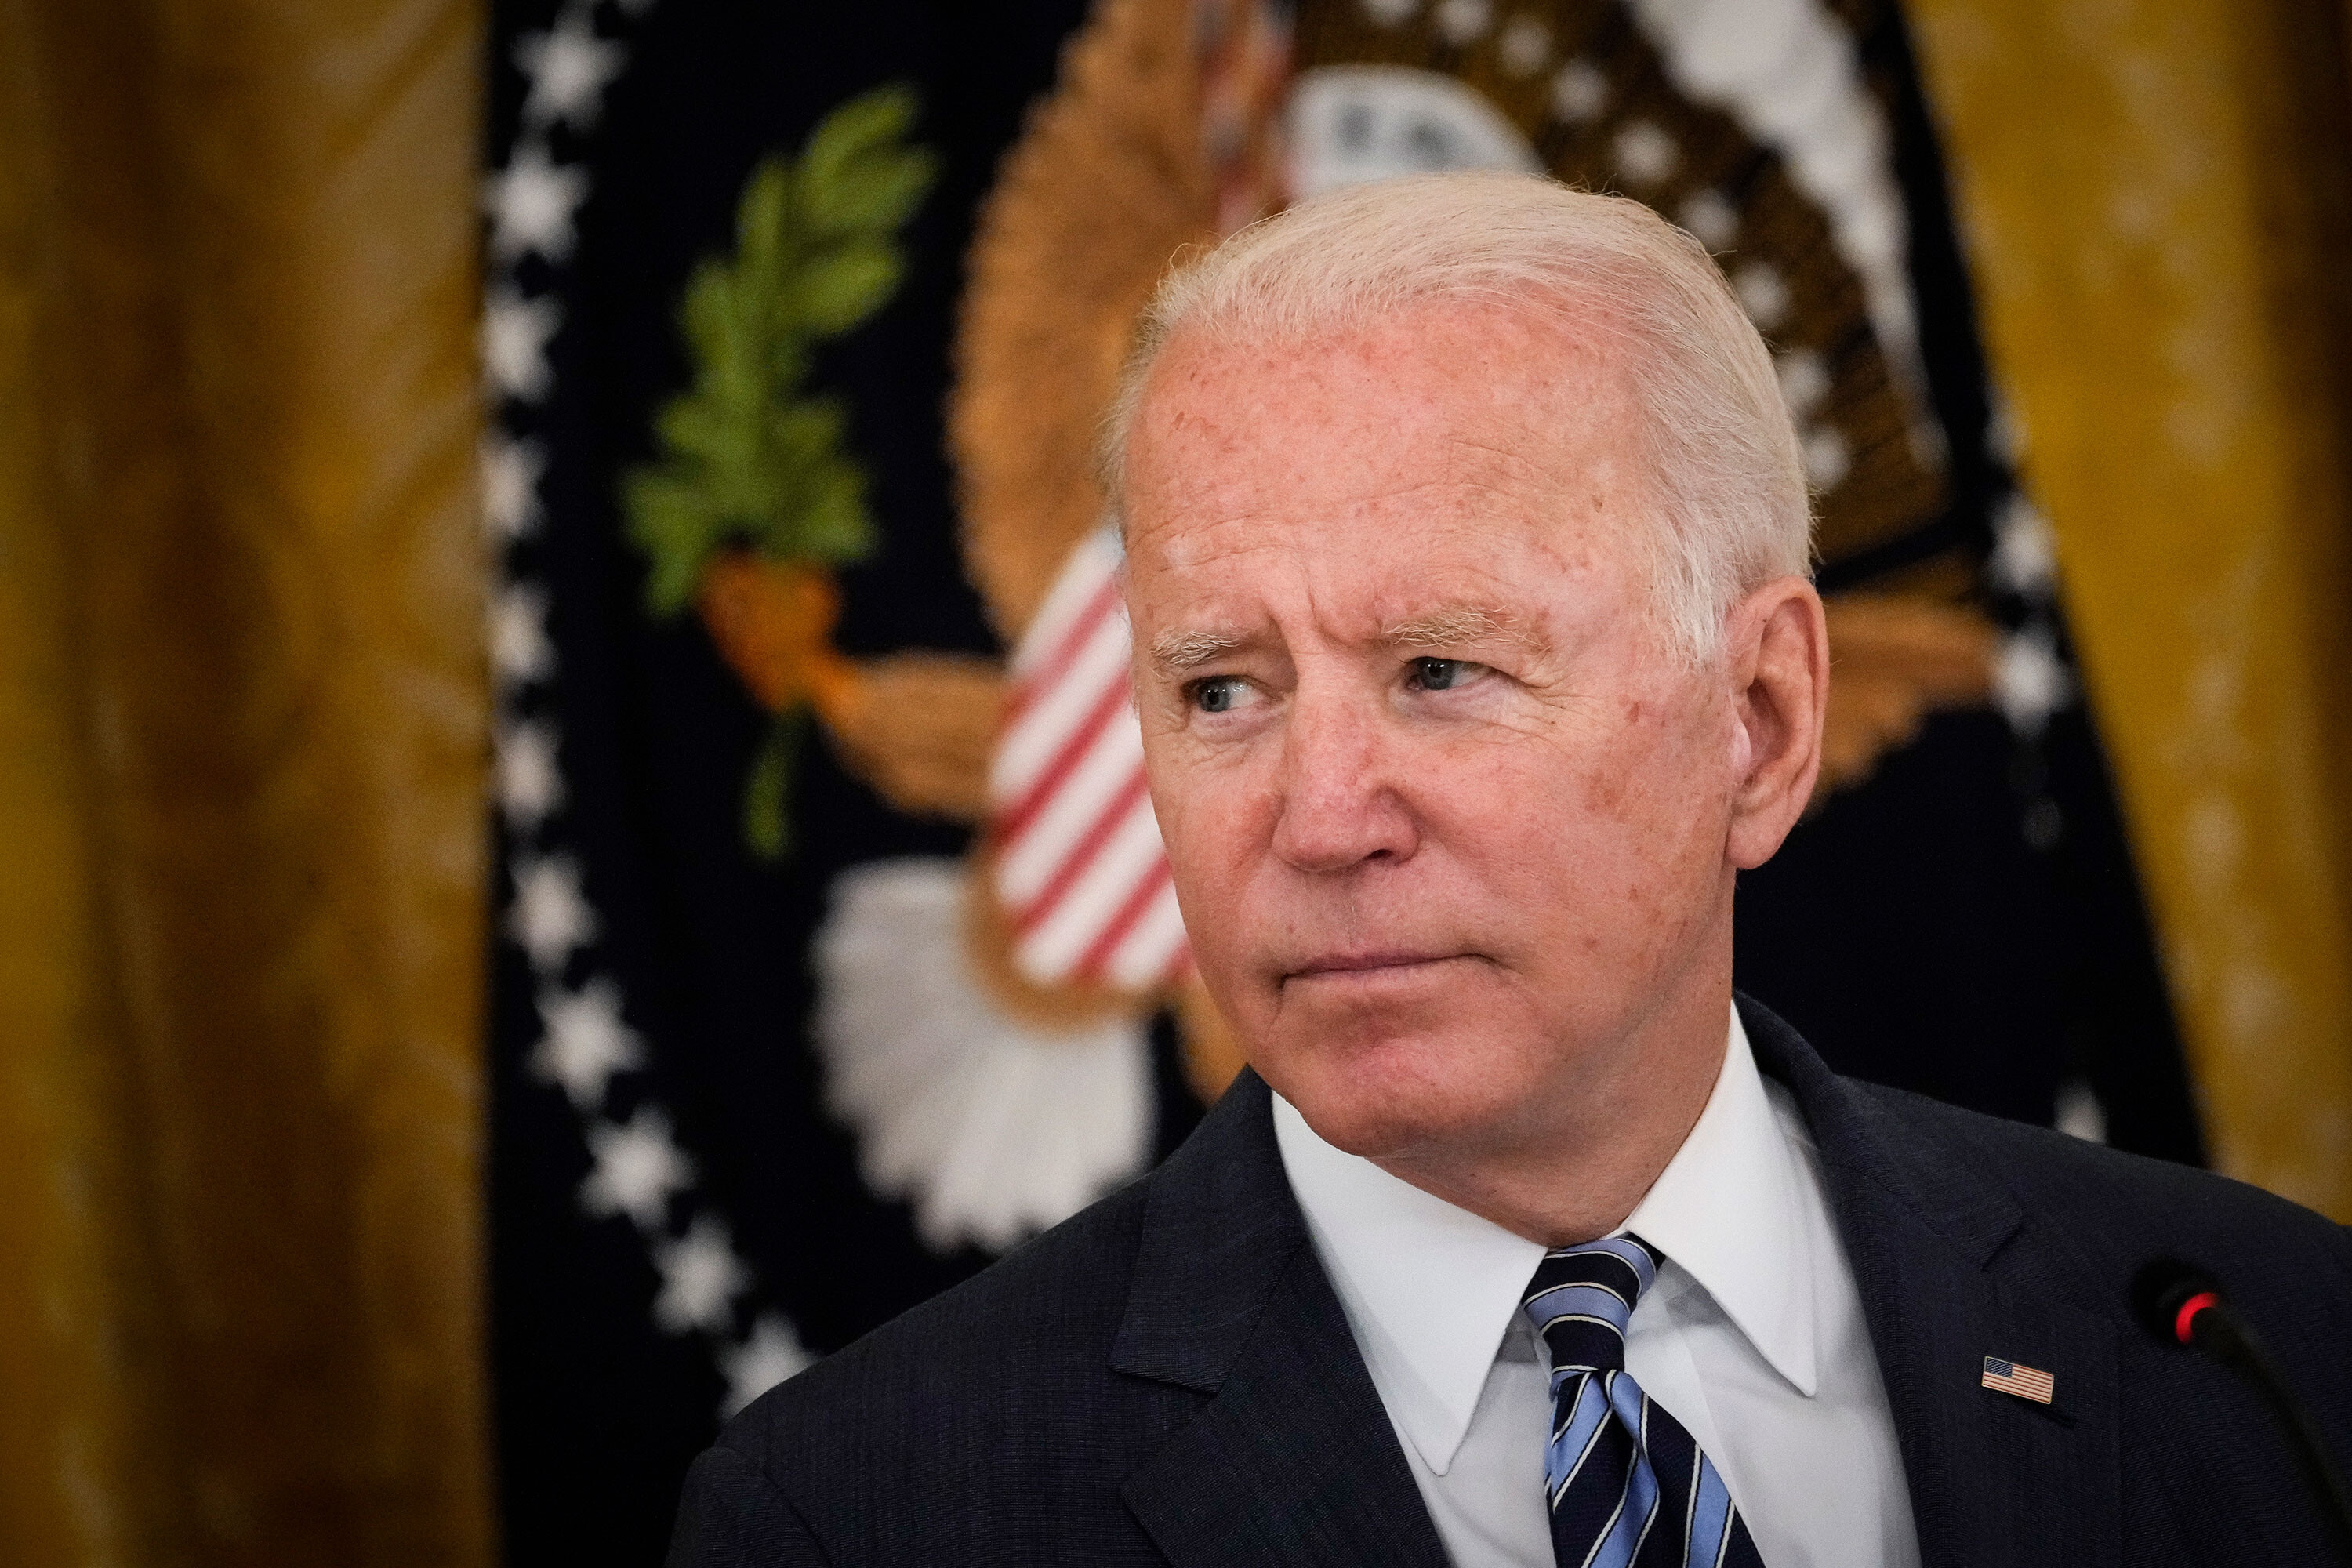 Biden faces a reckoning on his agenda as top aides start to temper expectations